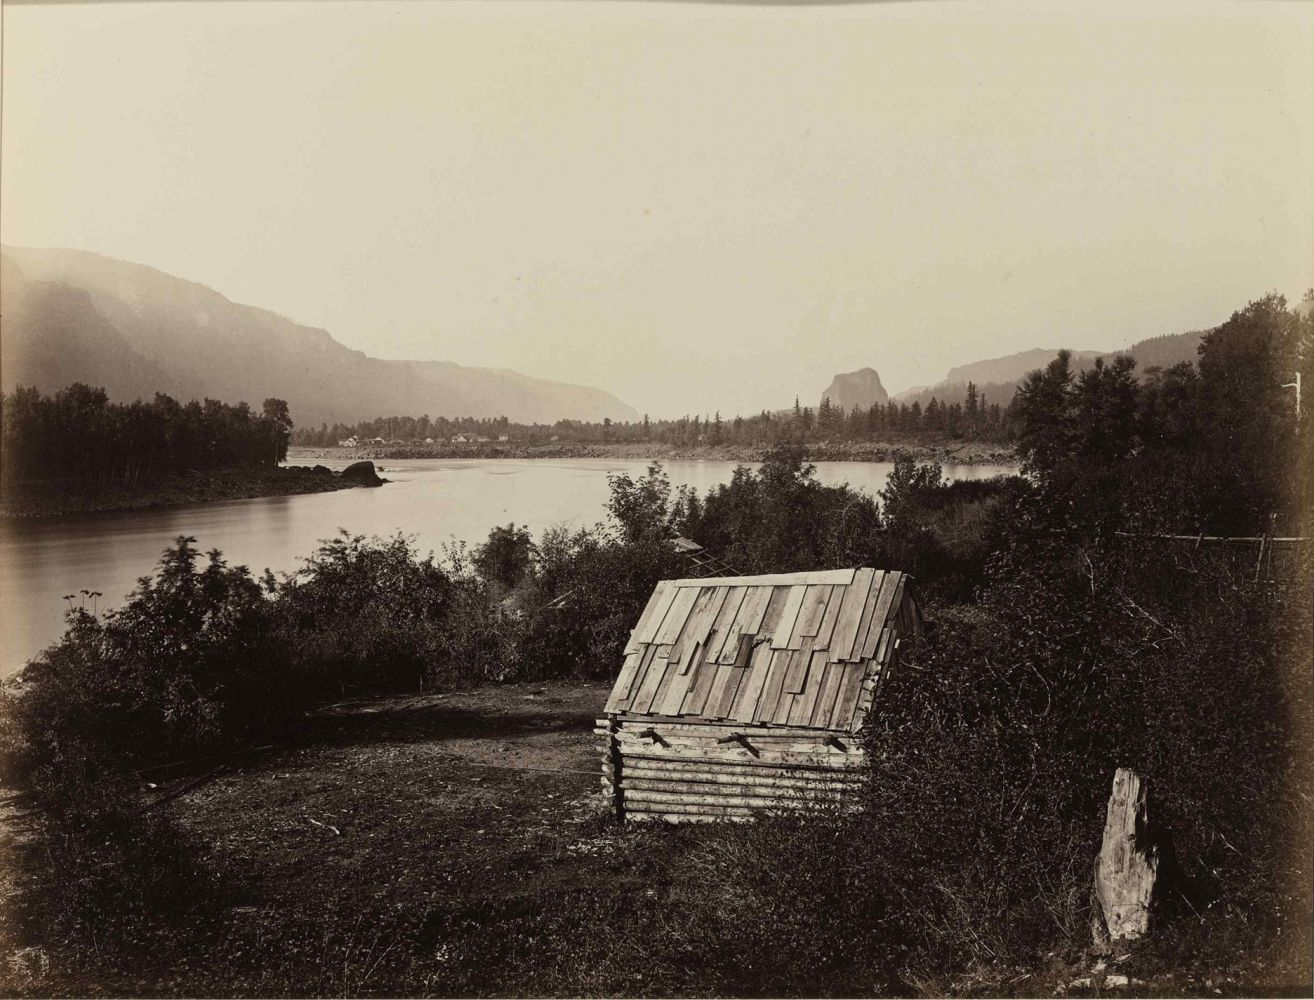 """Carleton E. WATKINS (American, 1829-1916) The Garrison, Columbia River, Oregon, circa 1867 Mammoth plate albumen print 40.3 x 52.7 cm mounted on 53.0 x 67.0 cm board Titled in an unidentified contemporary calligraphic hand in ink and numbered """"23"""" in an unidentified modern hand in pencil on mount. Two San Francisco Museum of Modern Art exhibition labels on verso."""